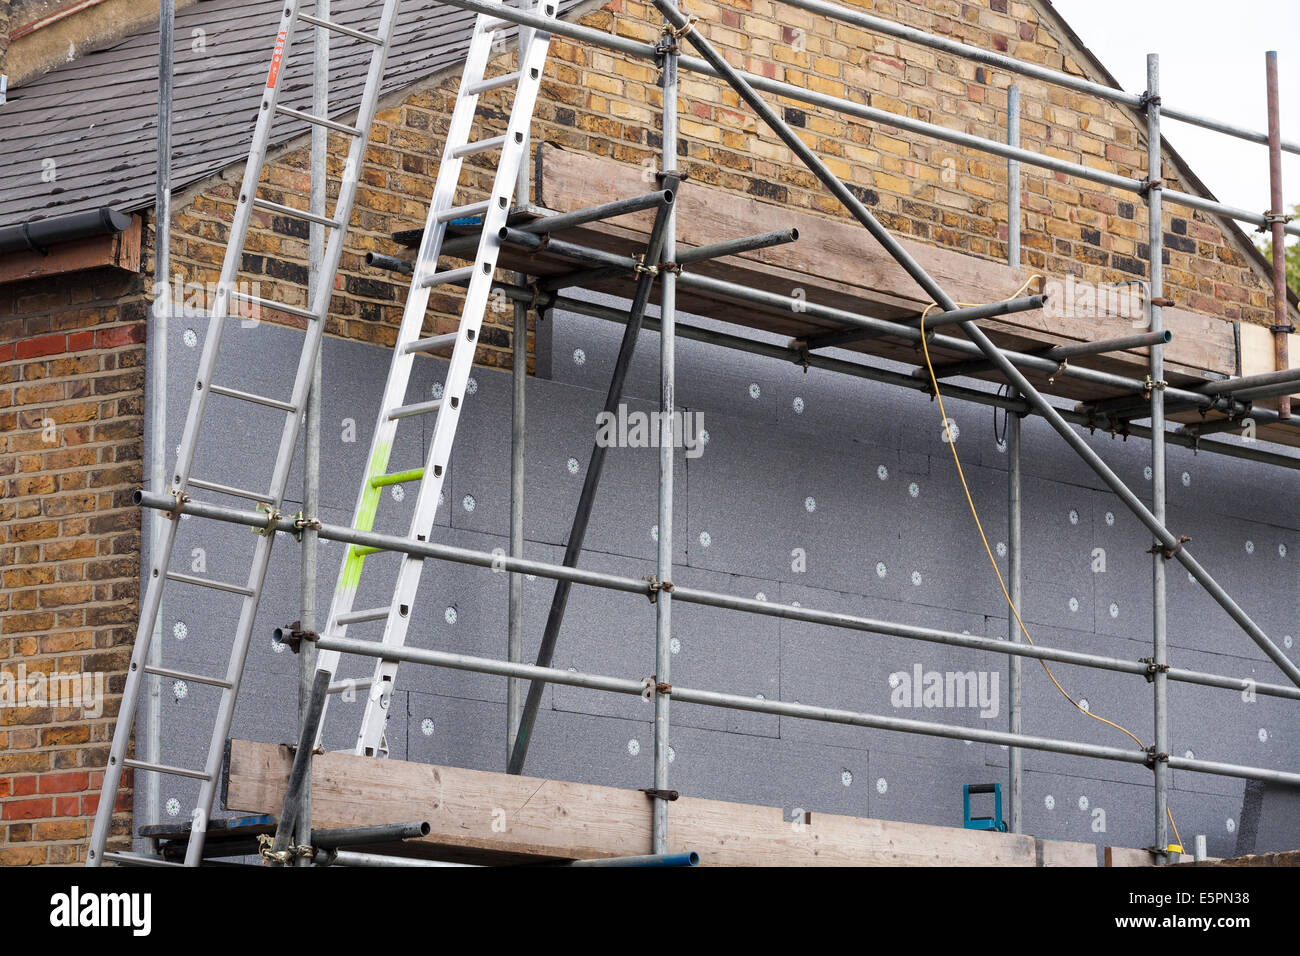 builders attaching fitting rigid foam wall insulation sheets panels boards to the gable